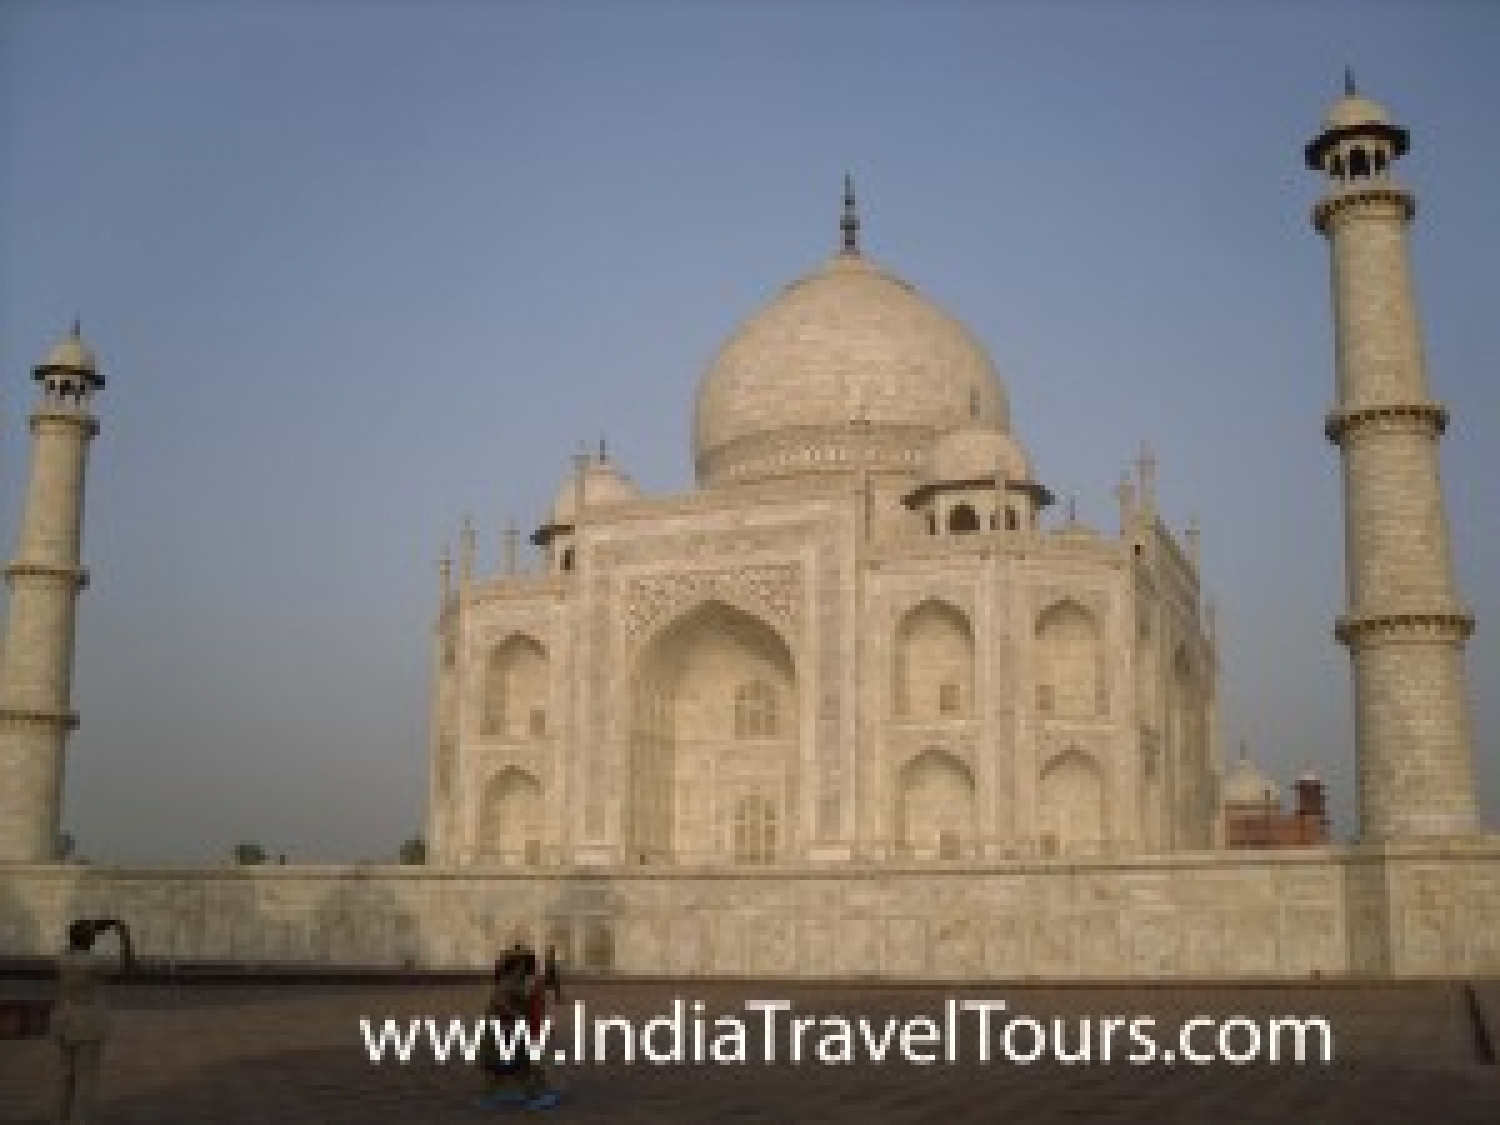 Taj Mahal Travel Tours Infographic